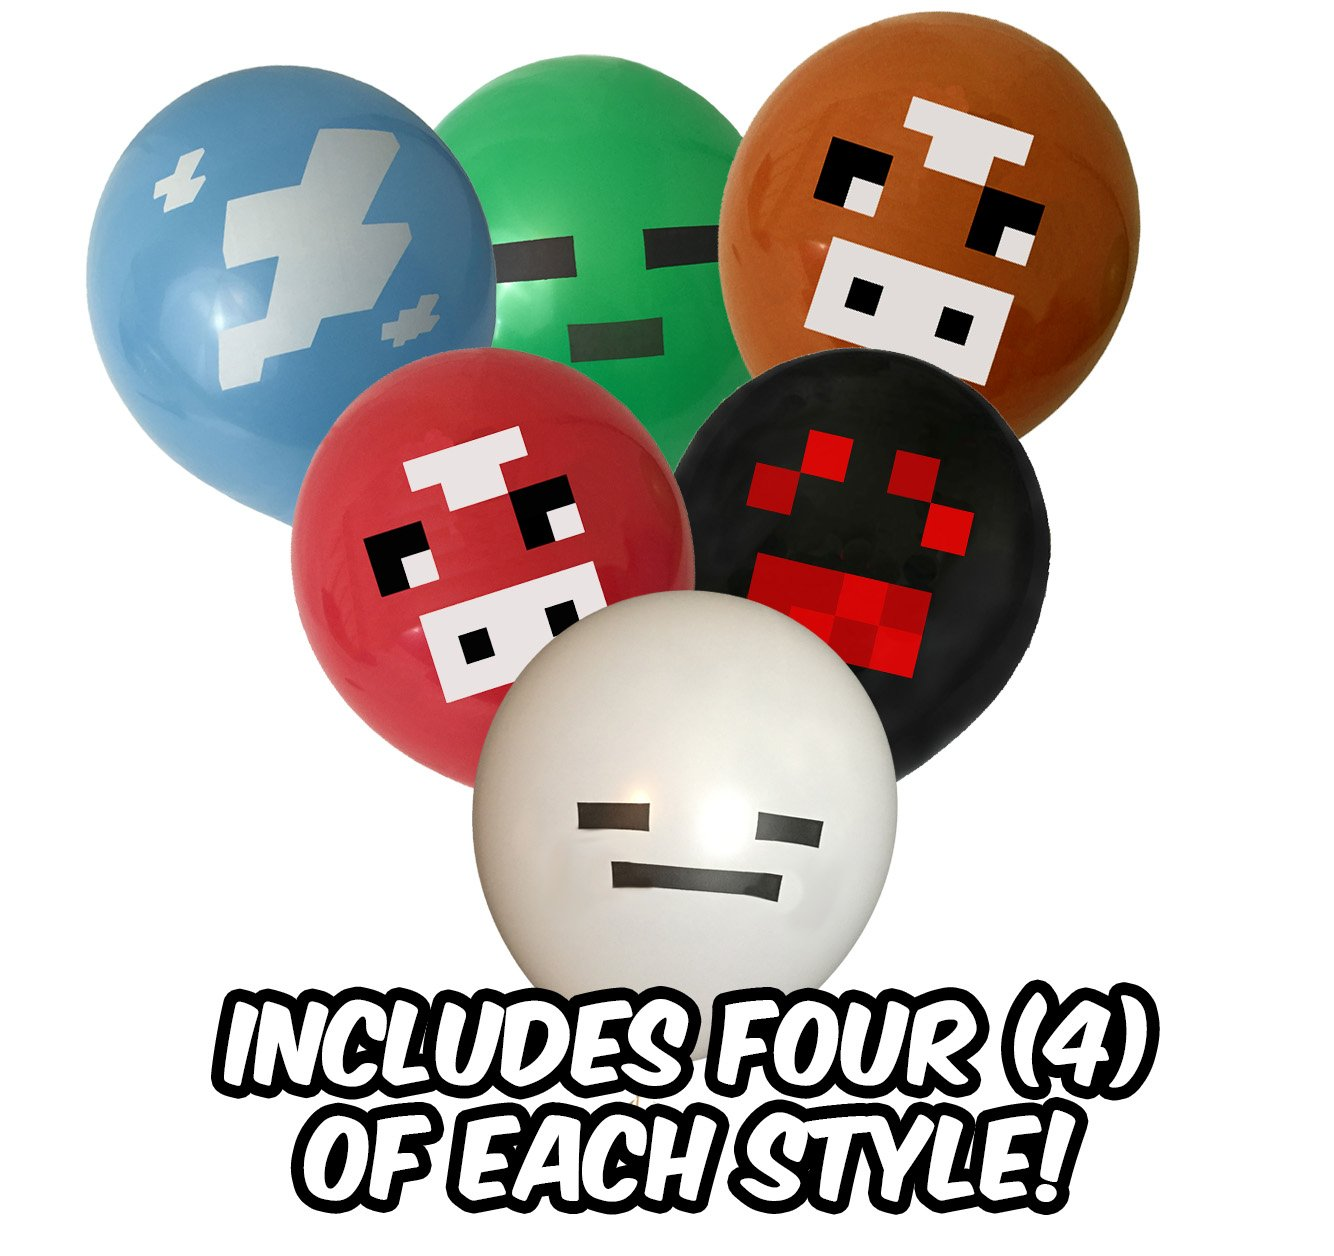 "Pixel Style Miner Party Balloon Pack (24 count) - Fun 12"" Latex Balloons - Includes Green Zombie Monster, Blue Cloud, Red Cow, White Chicken, White Ghost, Black Spider"